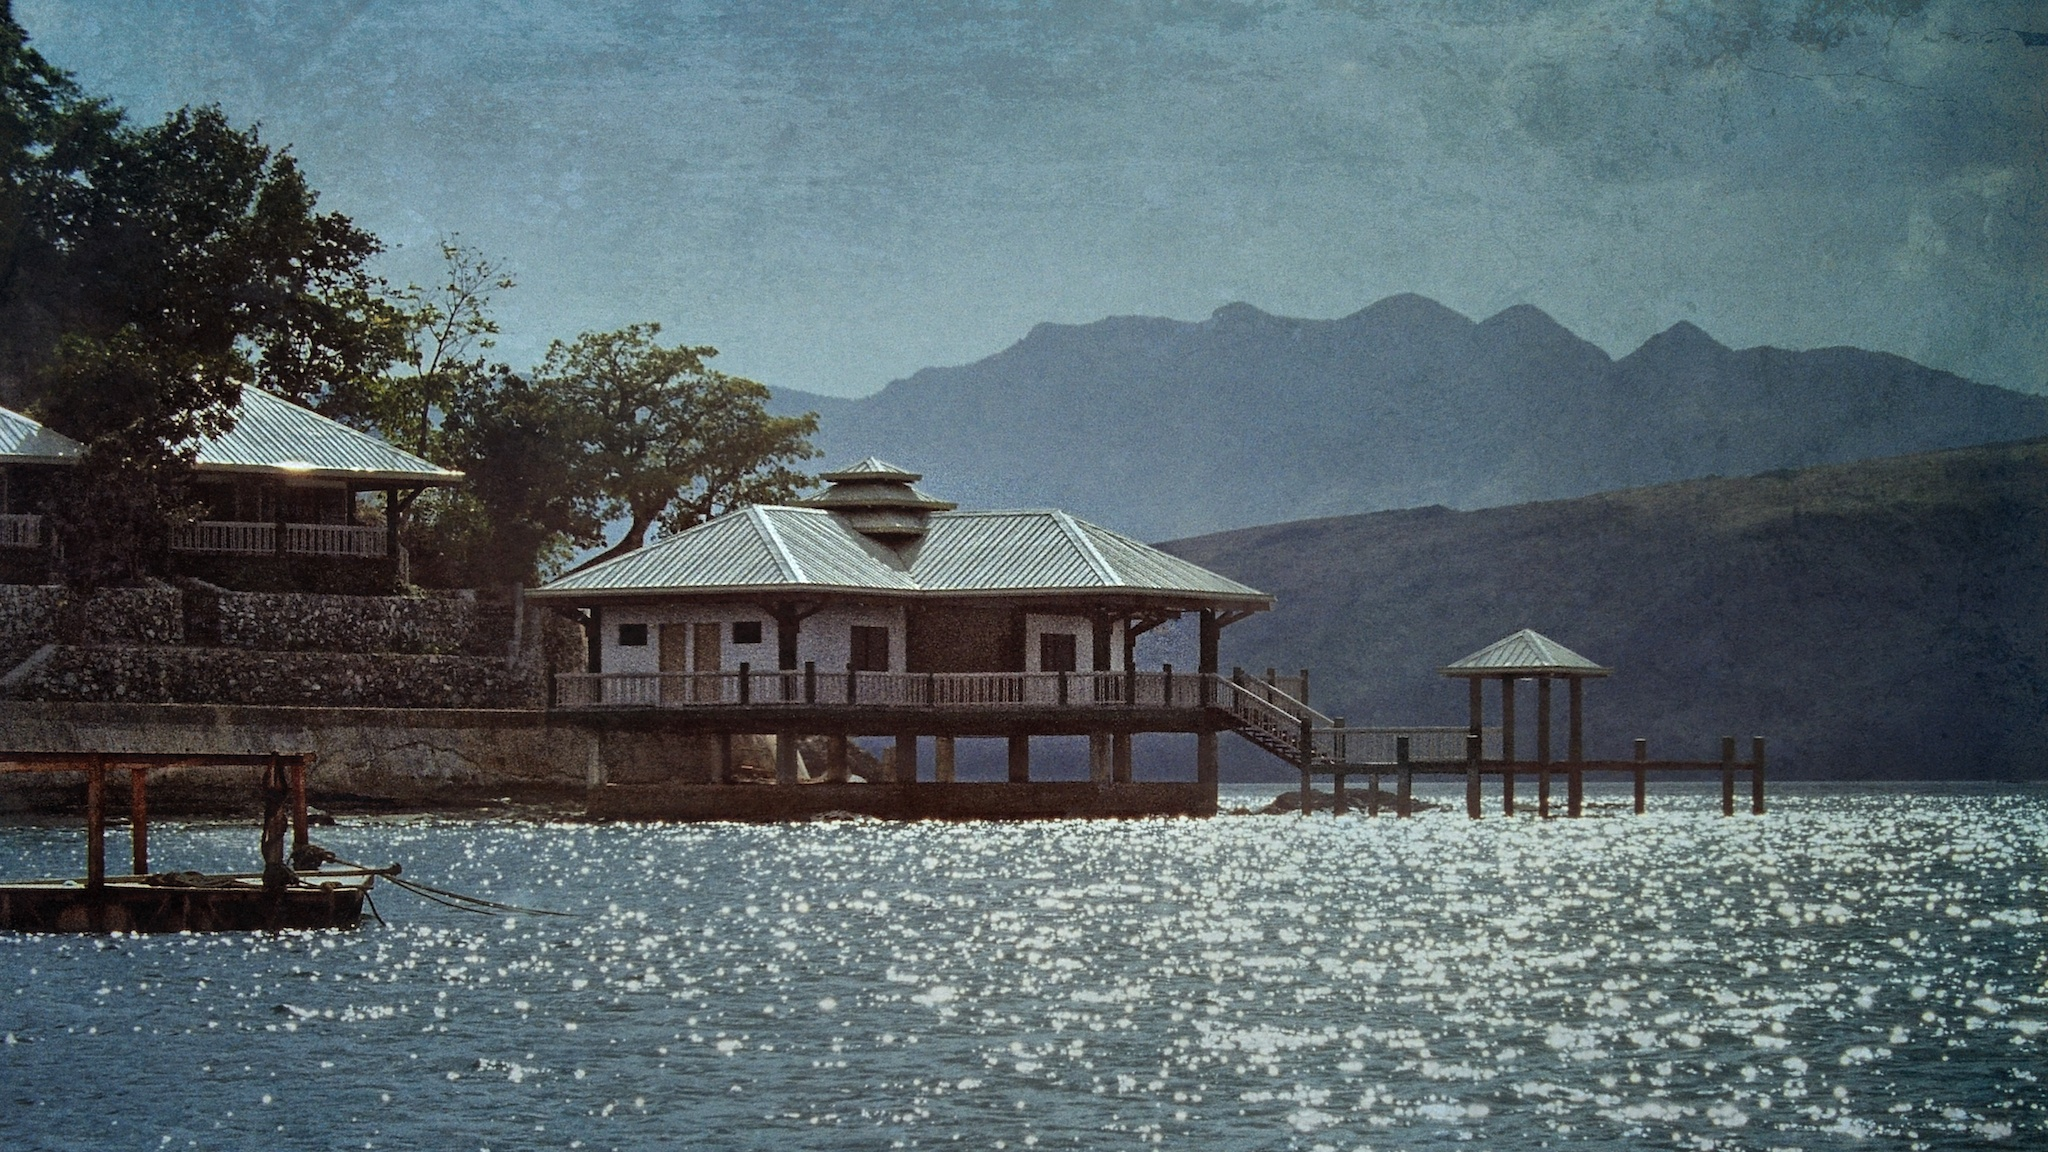 Somewhere on Subic Bay, The Philippines